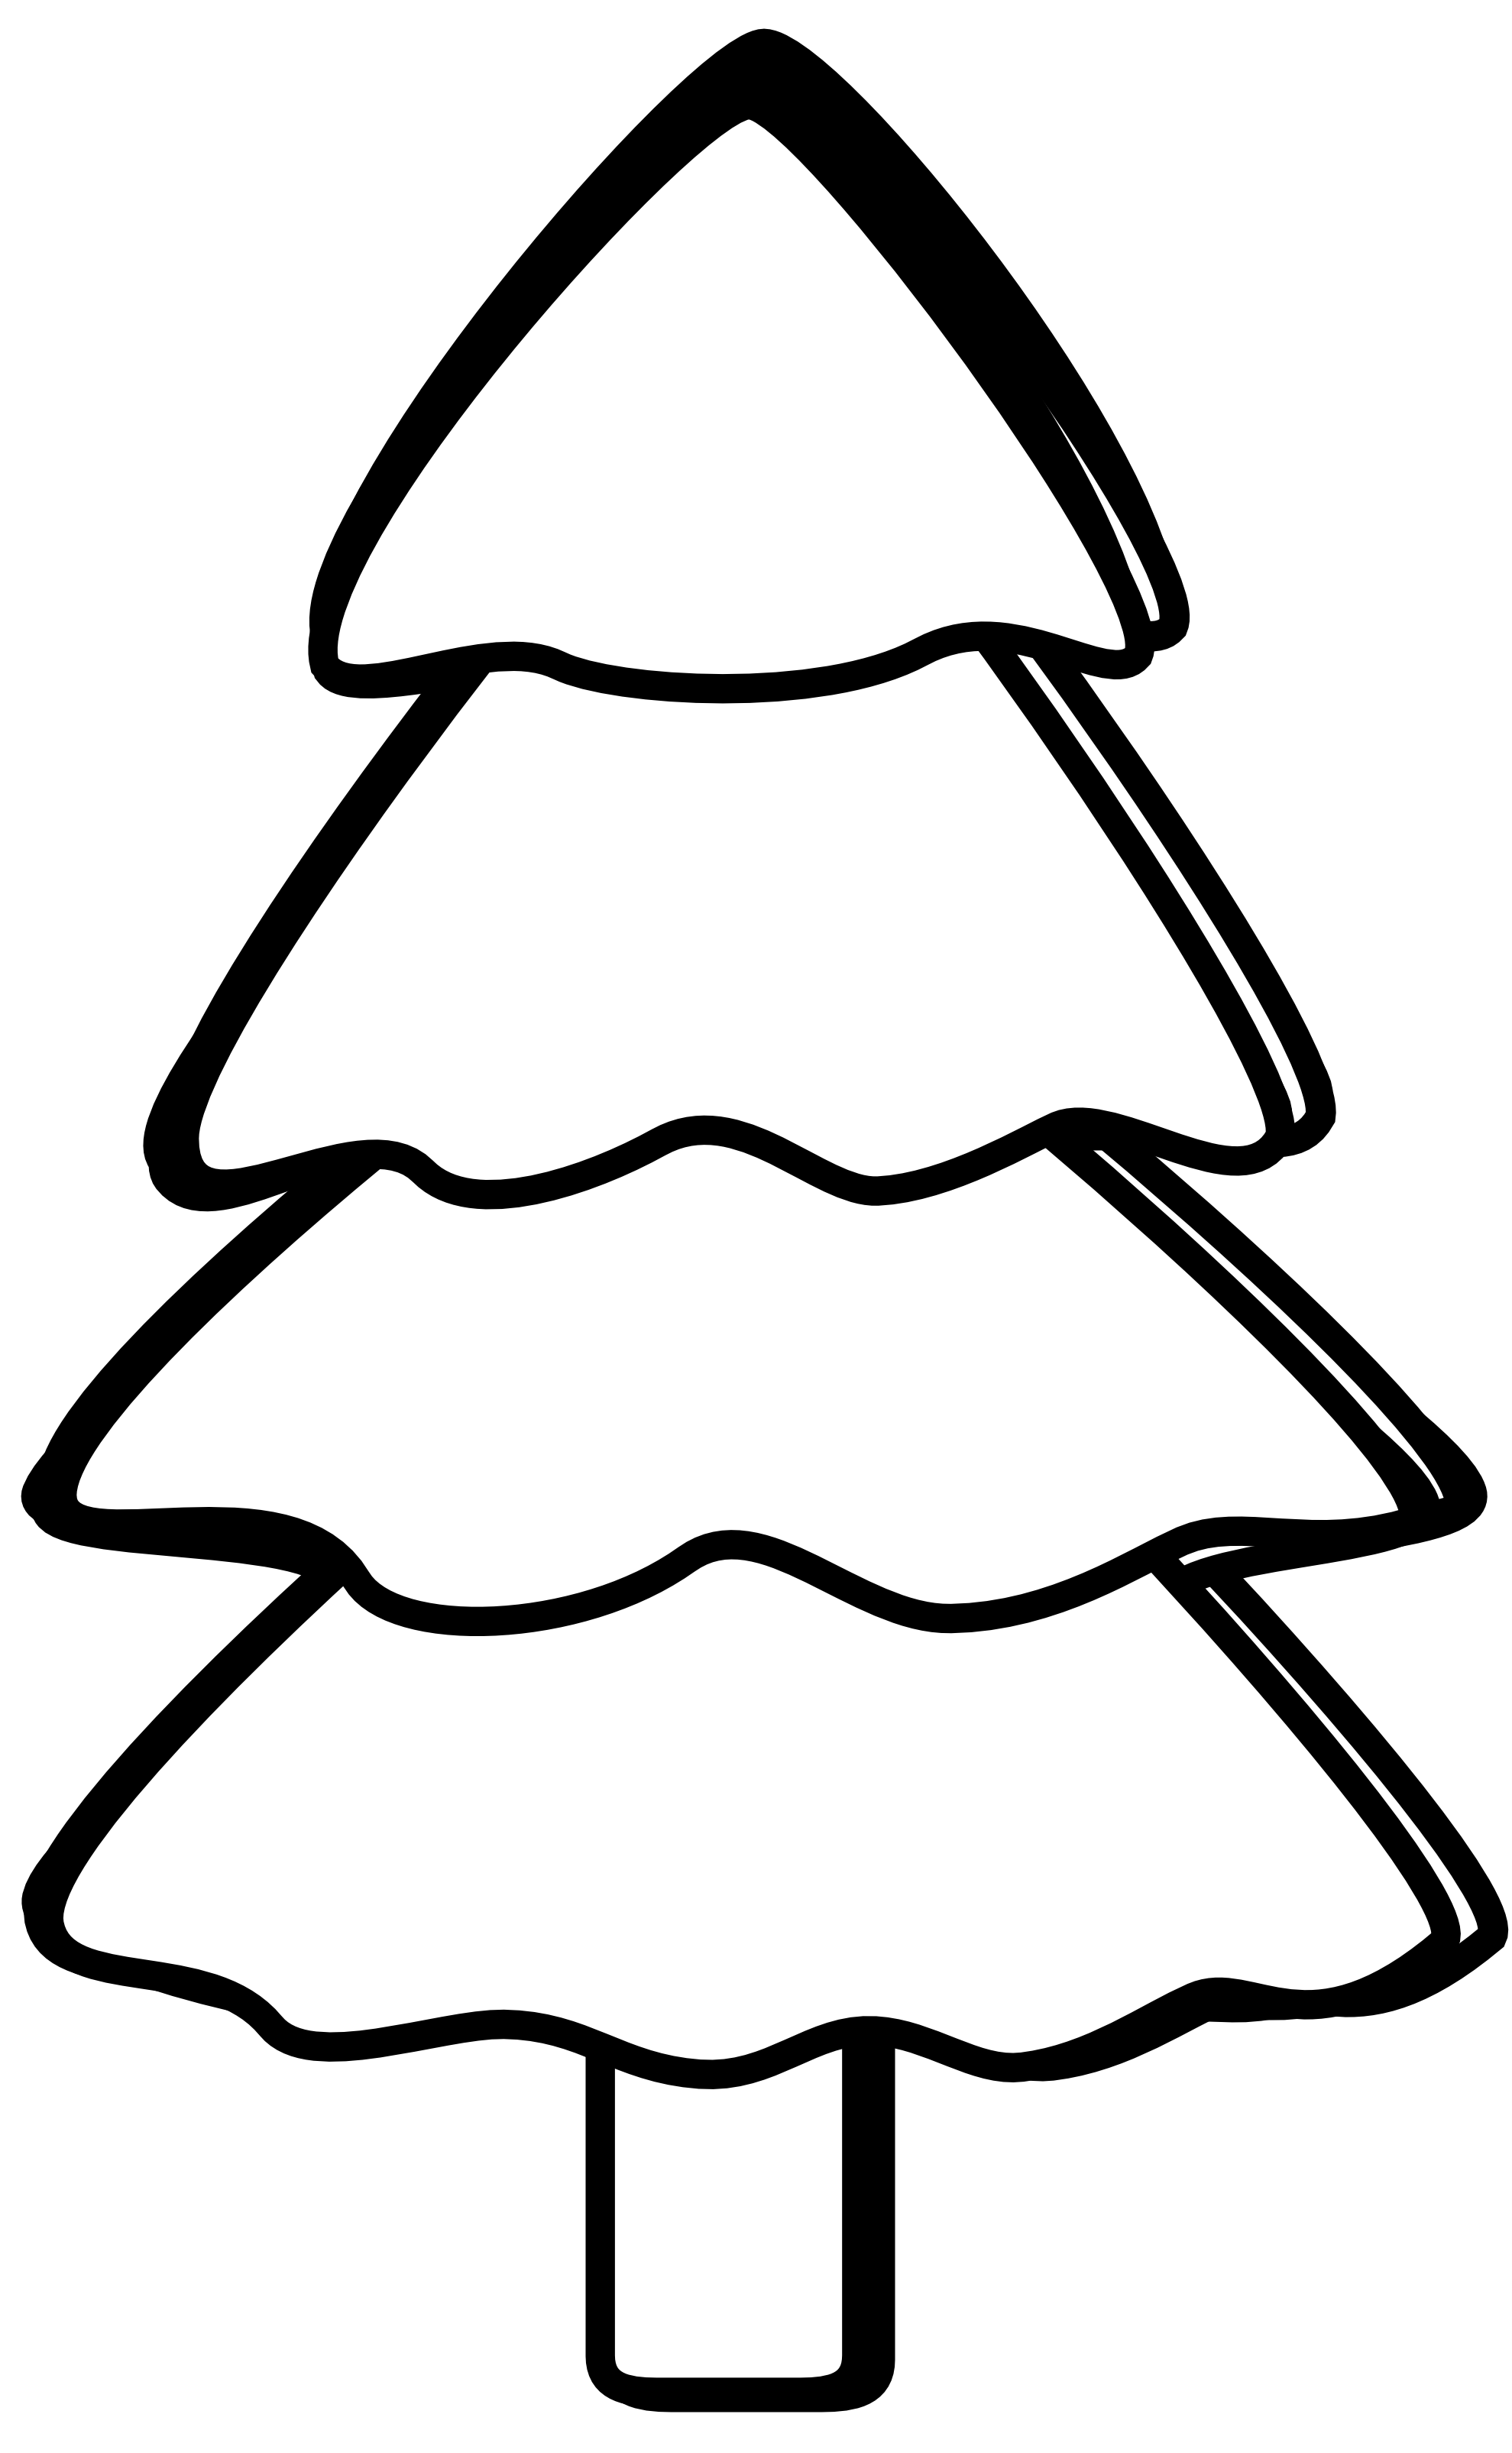 coloring christmas tree black and white christmas tree outline free download on clipartmag tree coloring black white christmas and